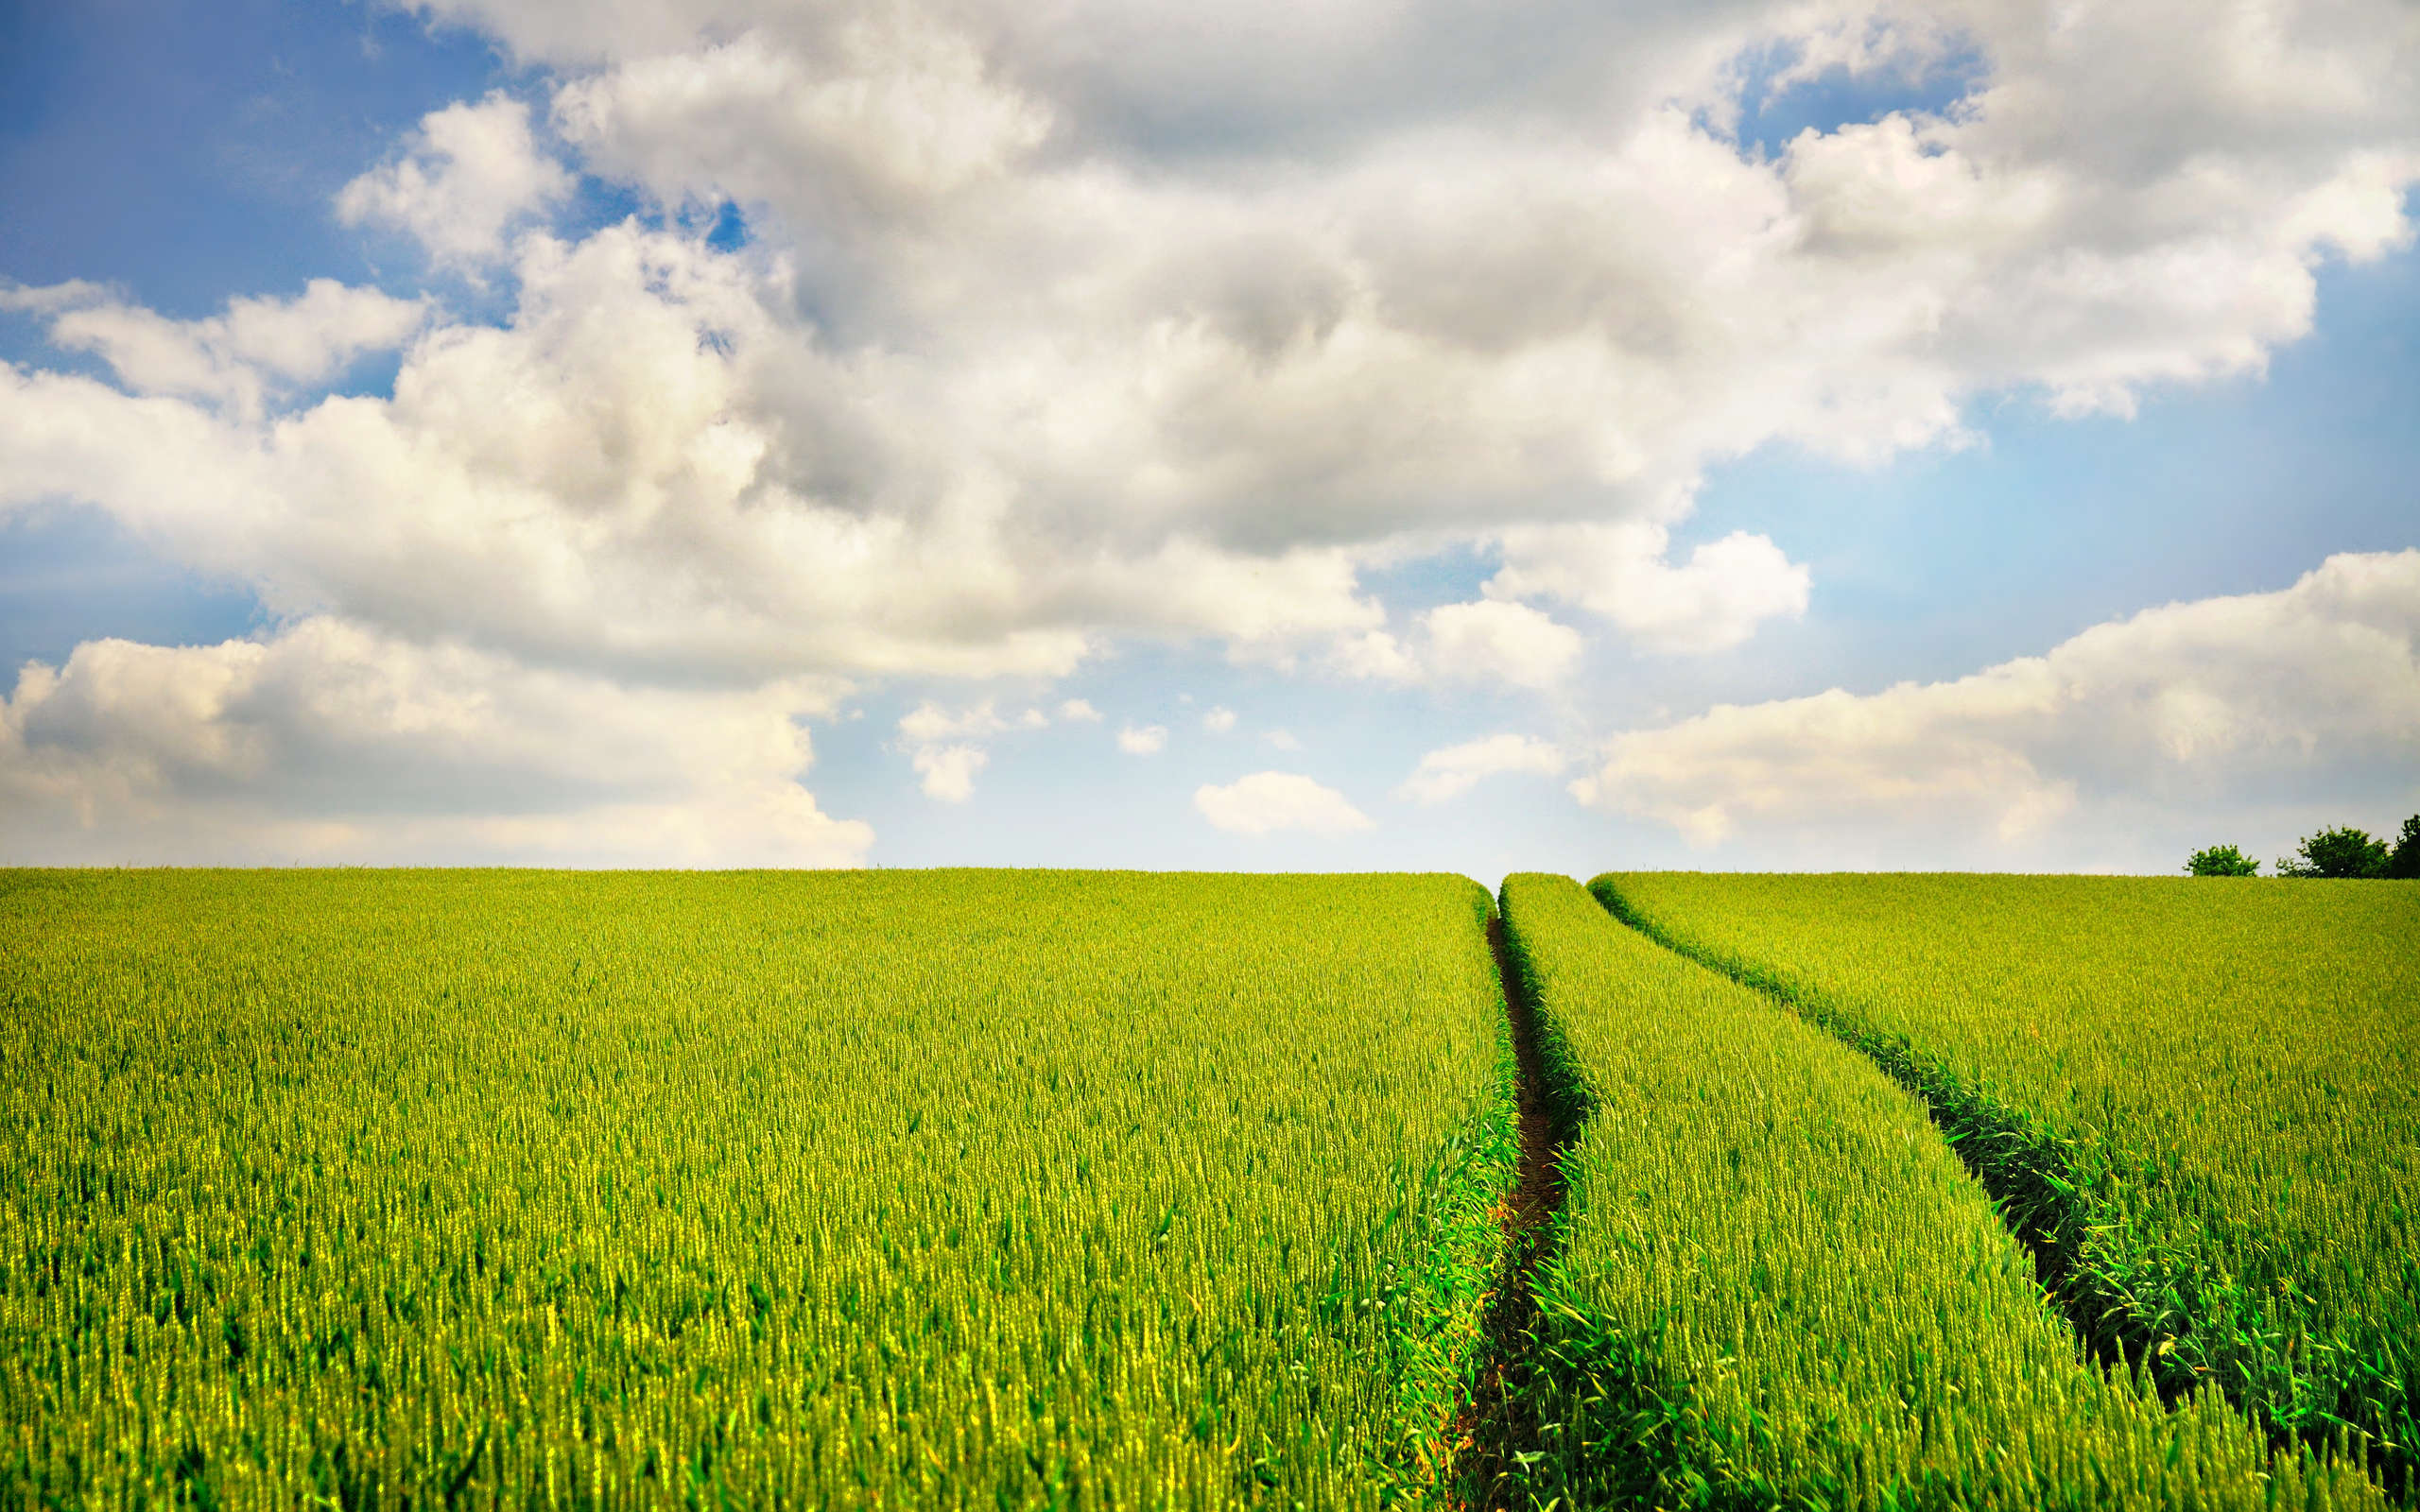 field-road-sky-signs-nature-photo-wallpaper-with-grass-grass-grass-wallpapers-fields-road